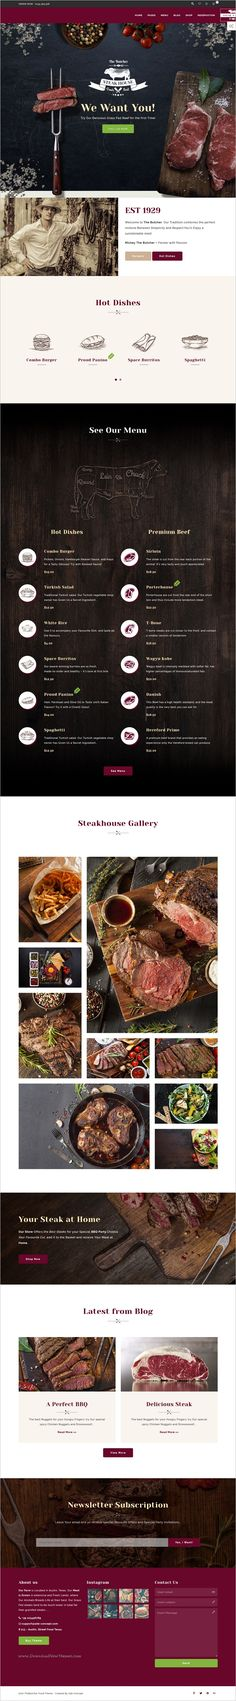 The butcher is clean and modern design responsive #WordPress theme for #food and eCommerce websites with 4 homepage layouts of classic #meat lovers, Steak houses, burger houses and chicken maniacs download now➩ https://themeforest.net/item/the-butcher-wordpress-food-ecommerce-theme-for-steak-houses-burger-houses-and-chicken-maniacs/19348143?ref=Datasata